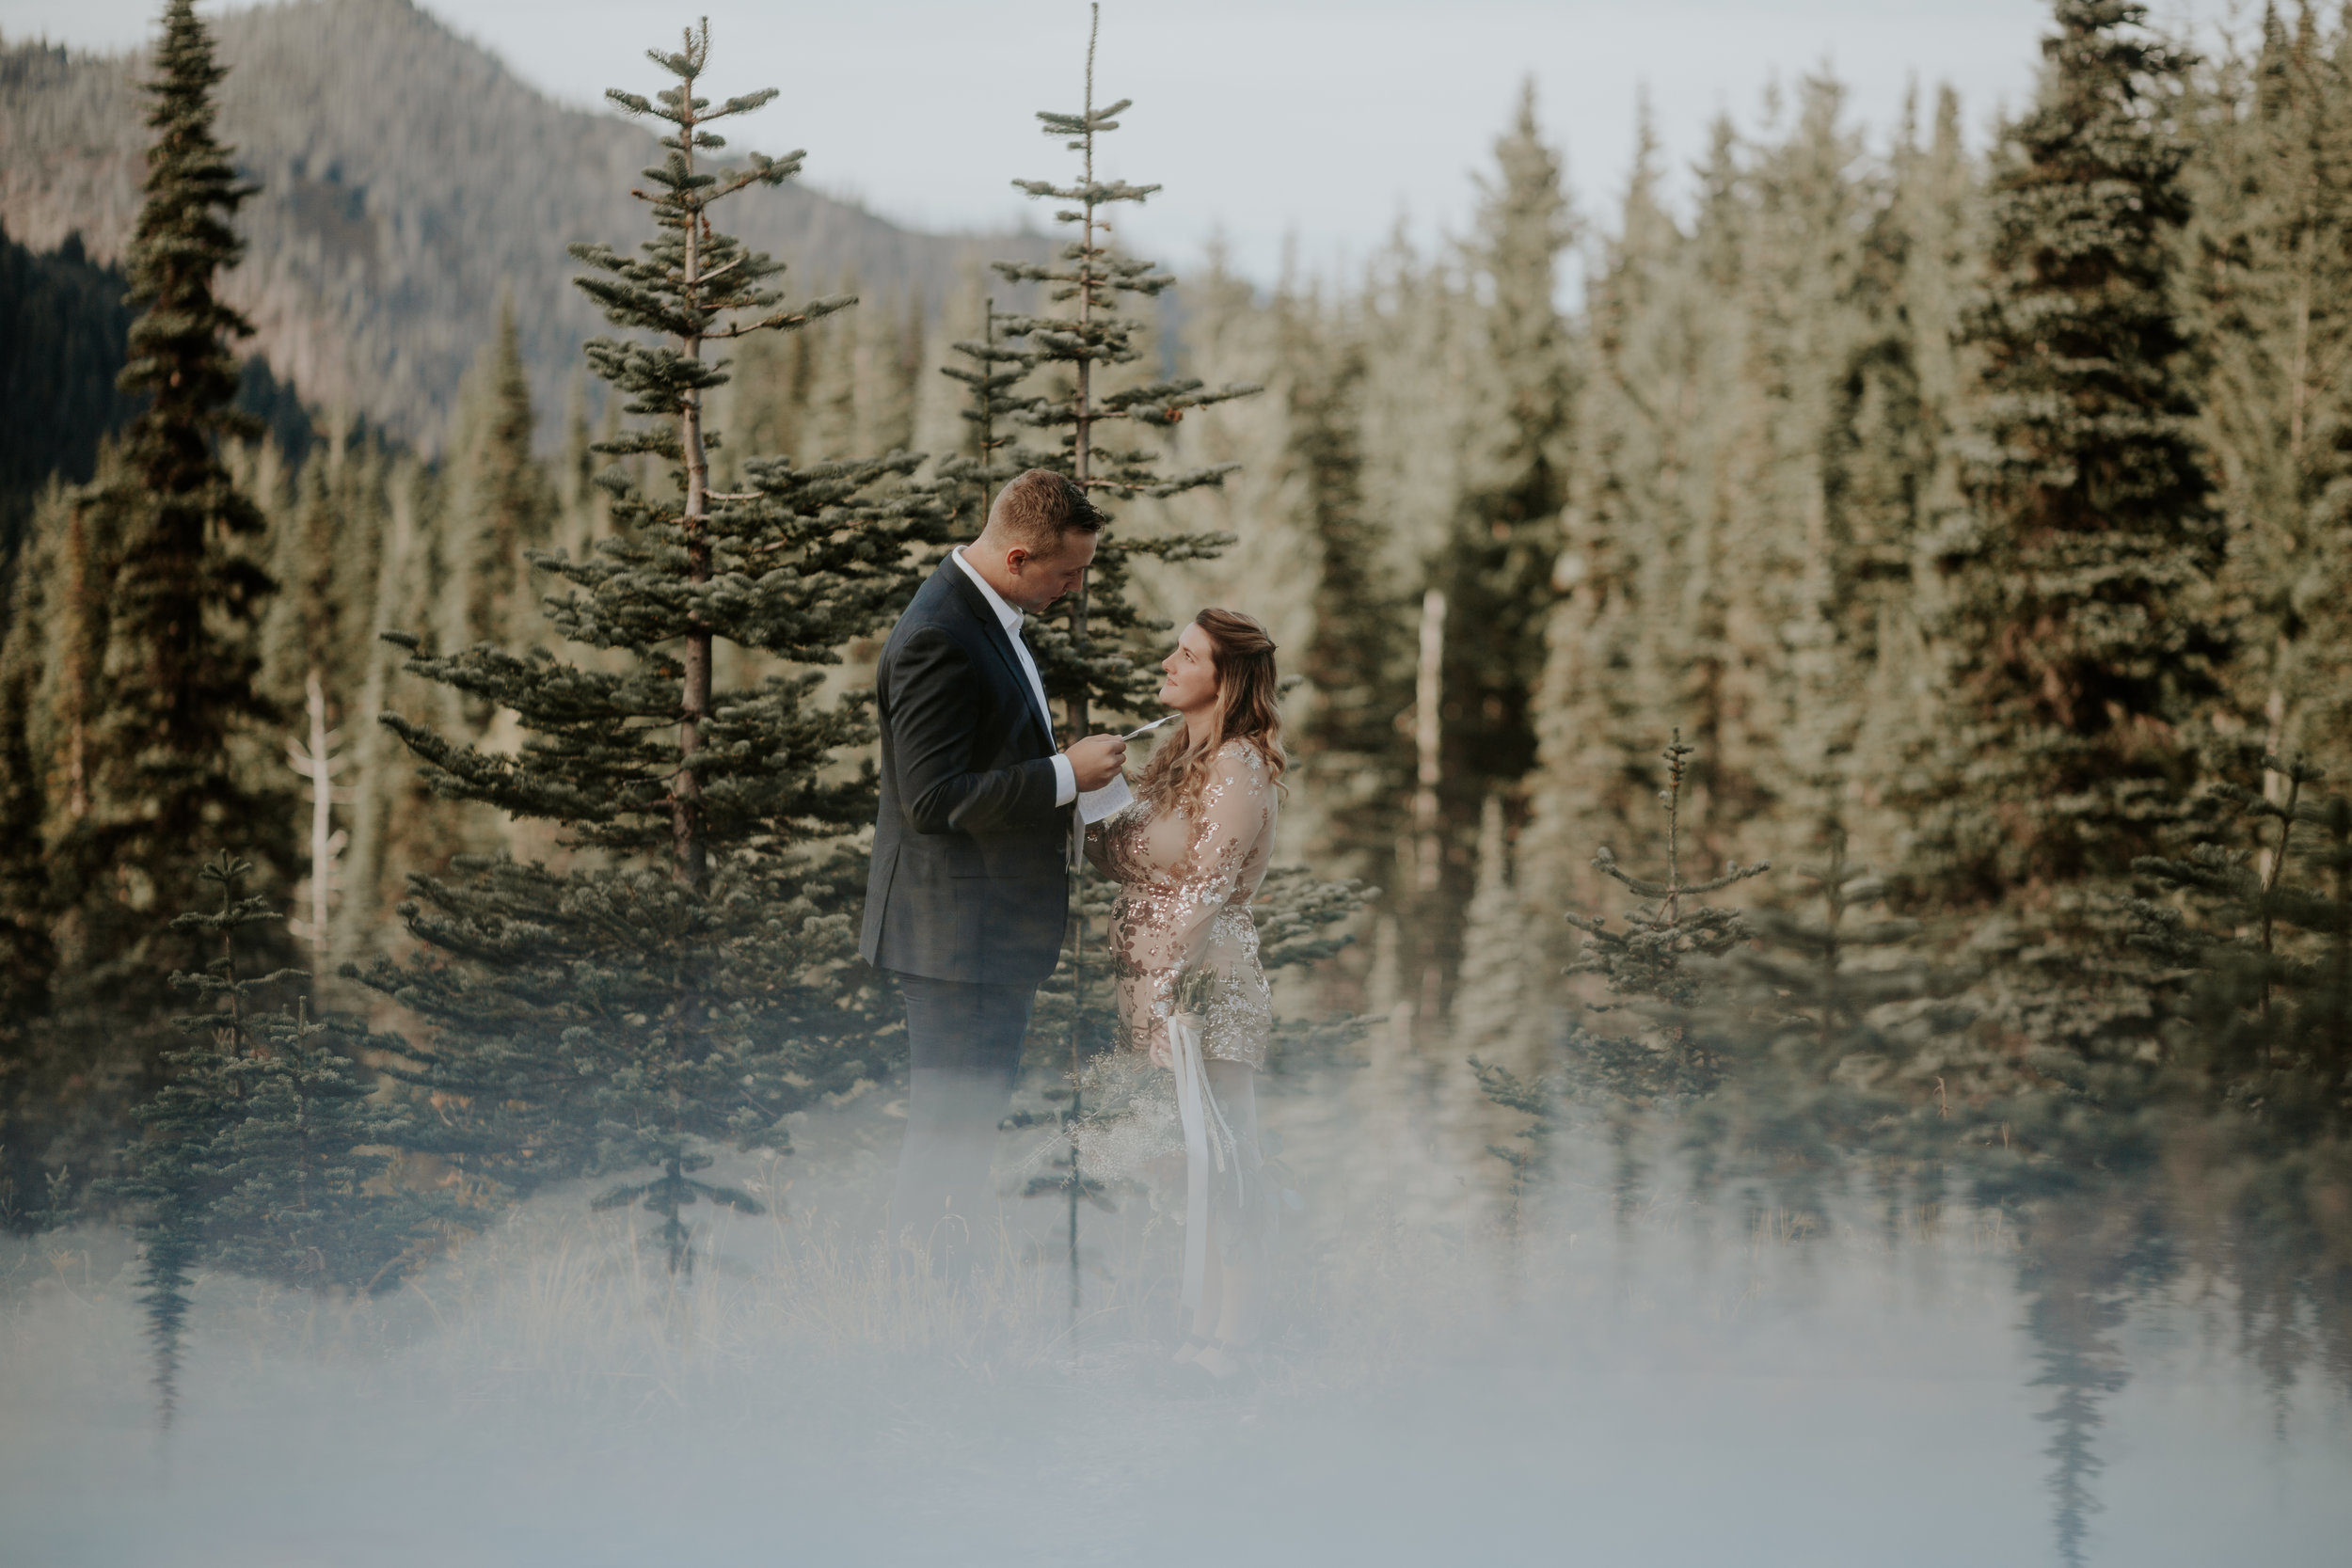 PNW-Hurricane-Ridge-Port-Angeles-Washington-elopement-photographer-kayla-dawn-photography-kayladawnphoto-wedding-anniversary-photoshoot-olympic-peninsula-137.jpg